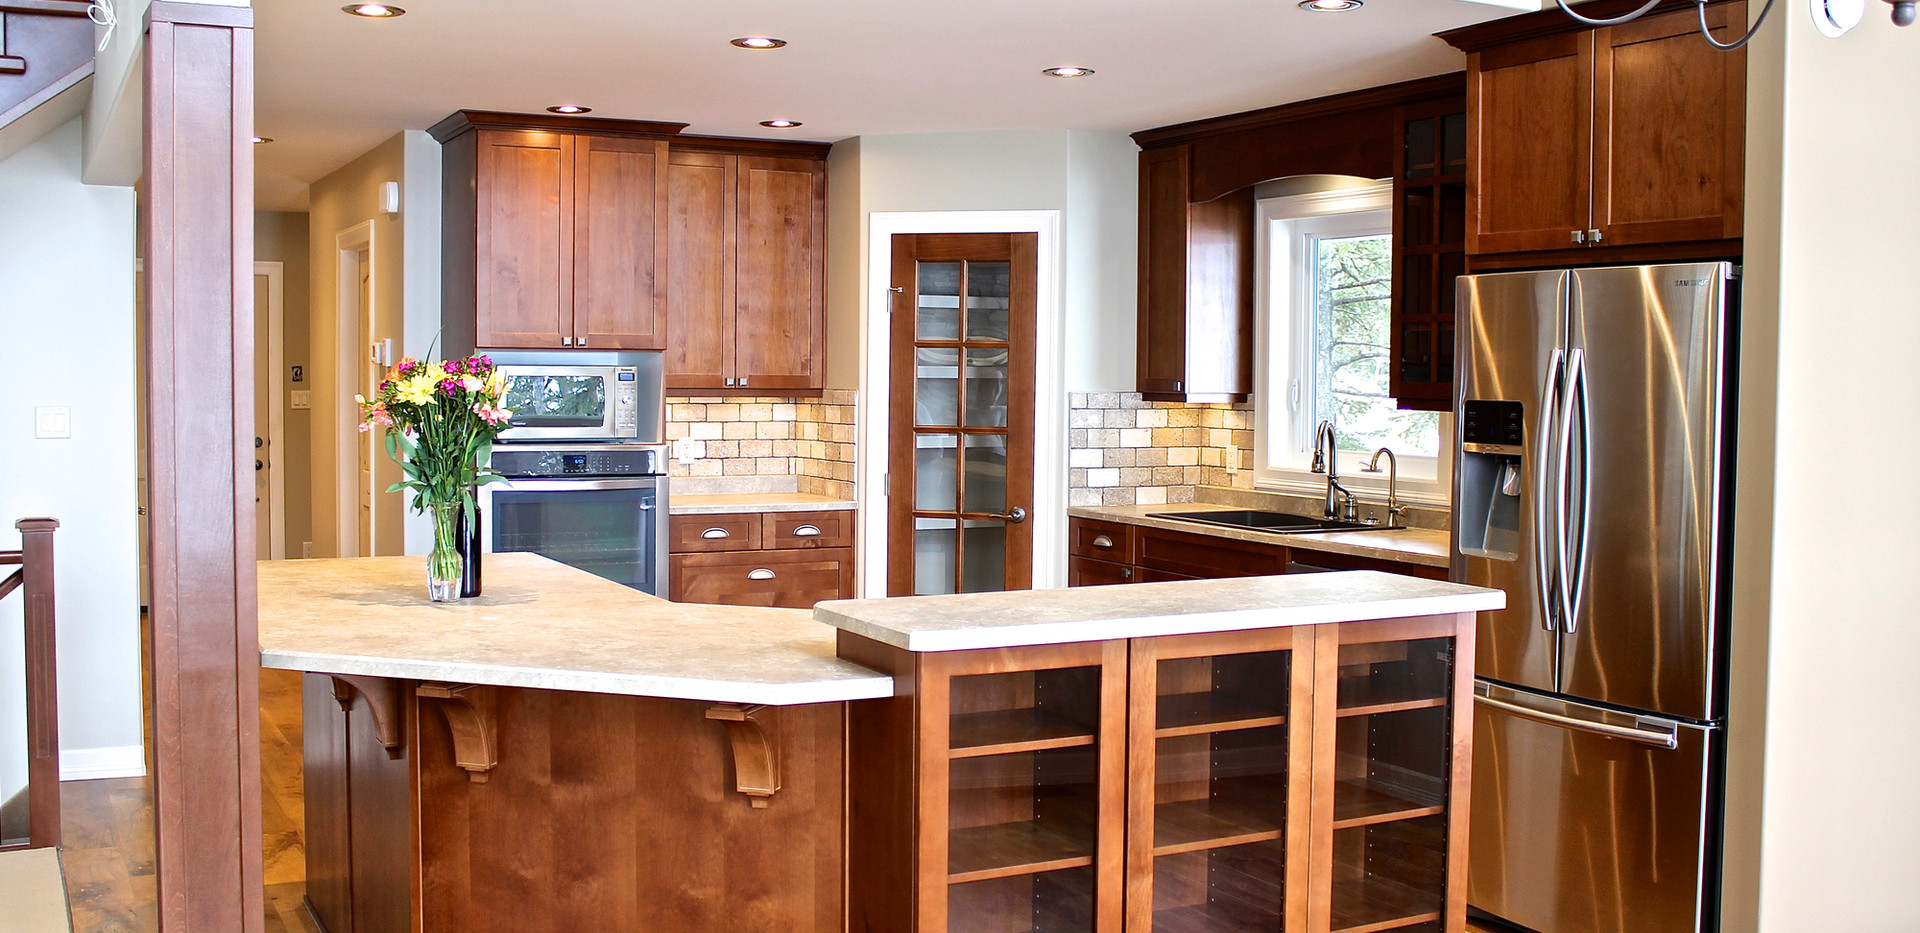 Kitchens for every taste